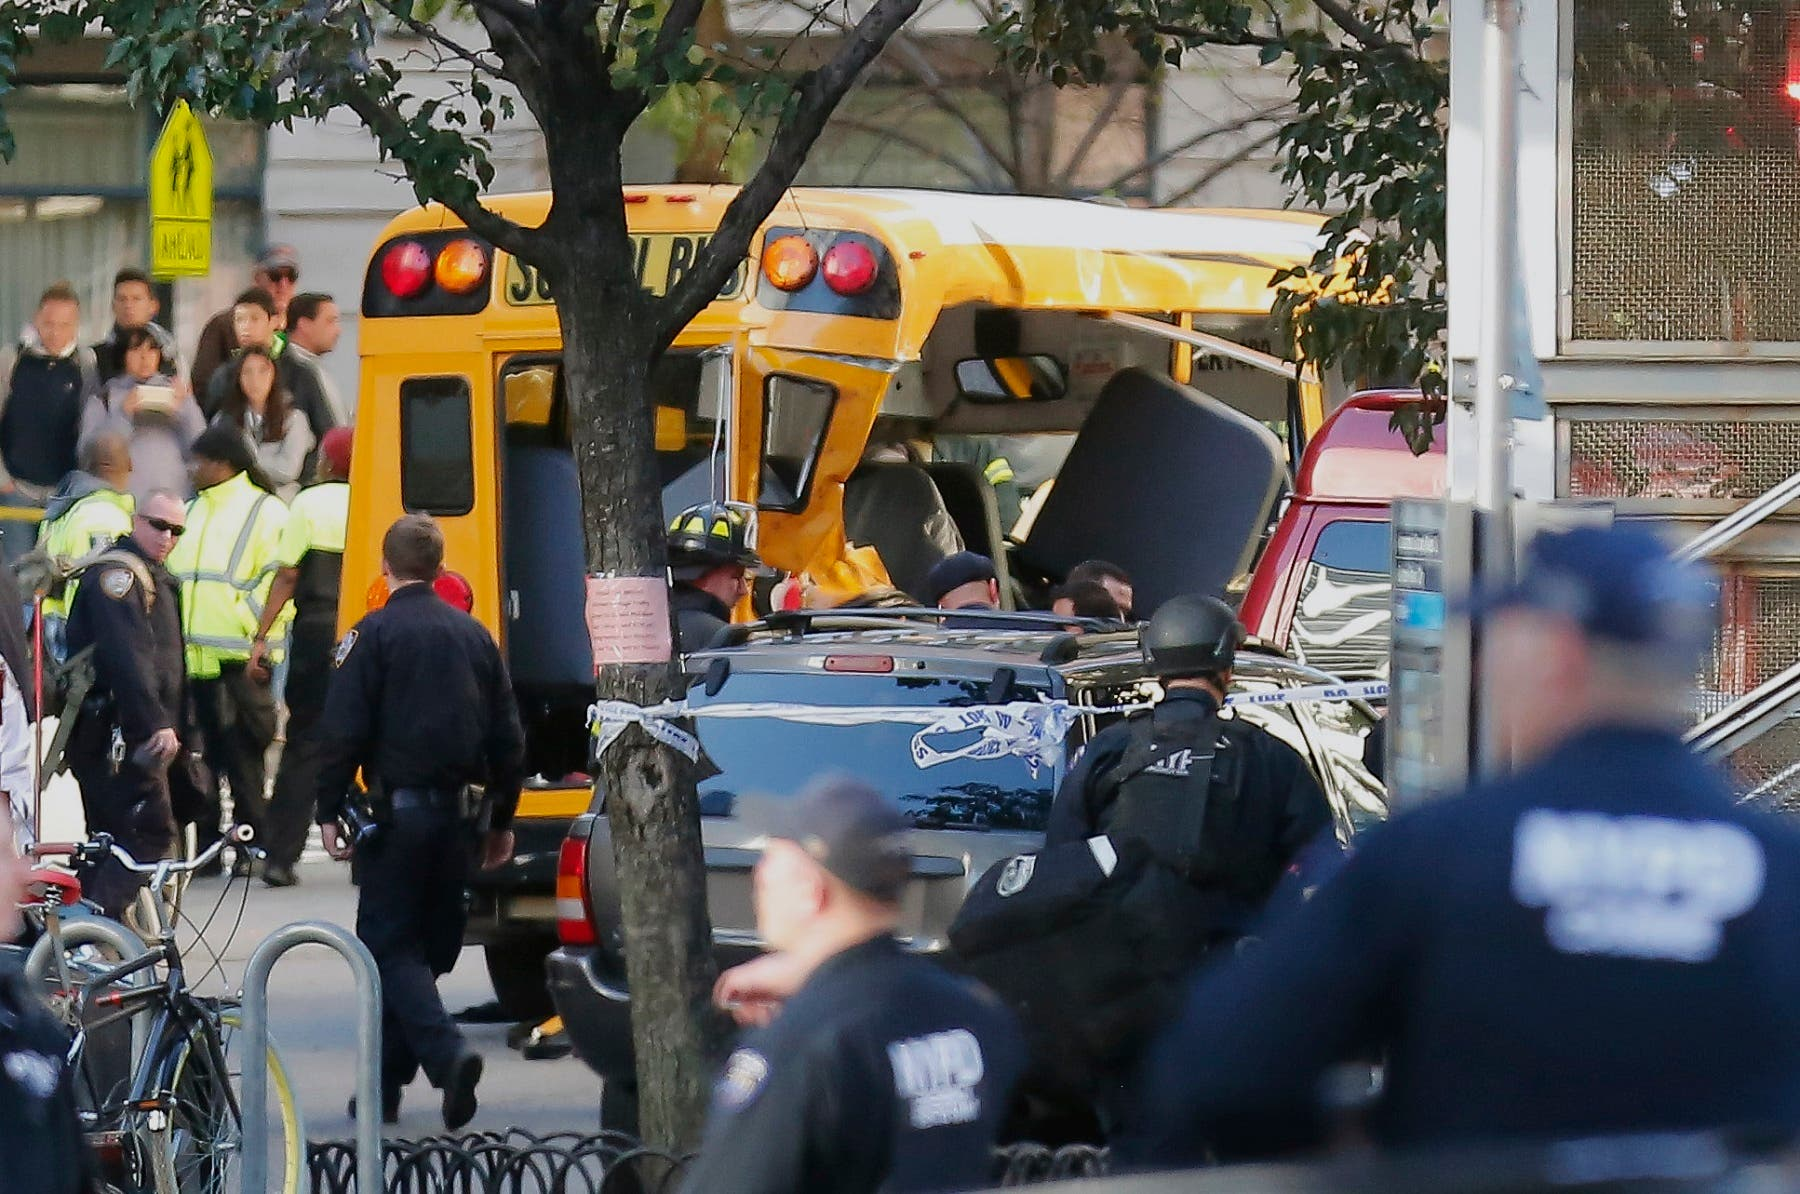 Authorities respond near a damaged school bus where a terror suspect drove onto a busy bicycle path near the World Trade Center memorial and struck several people. (AP)